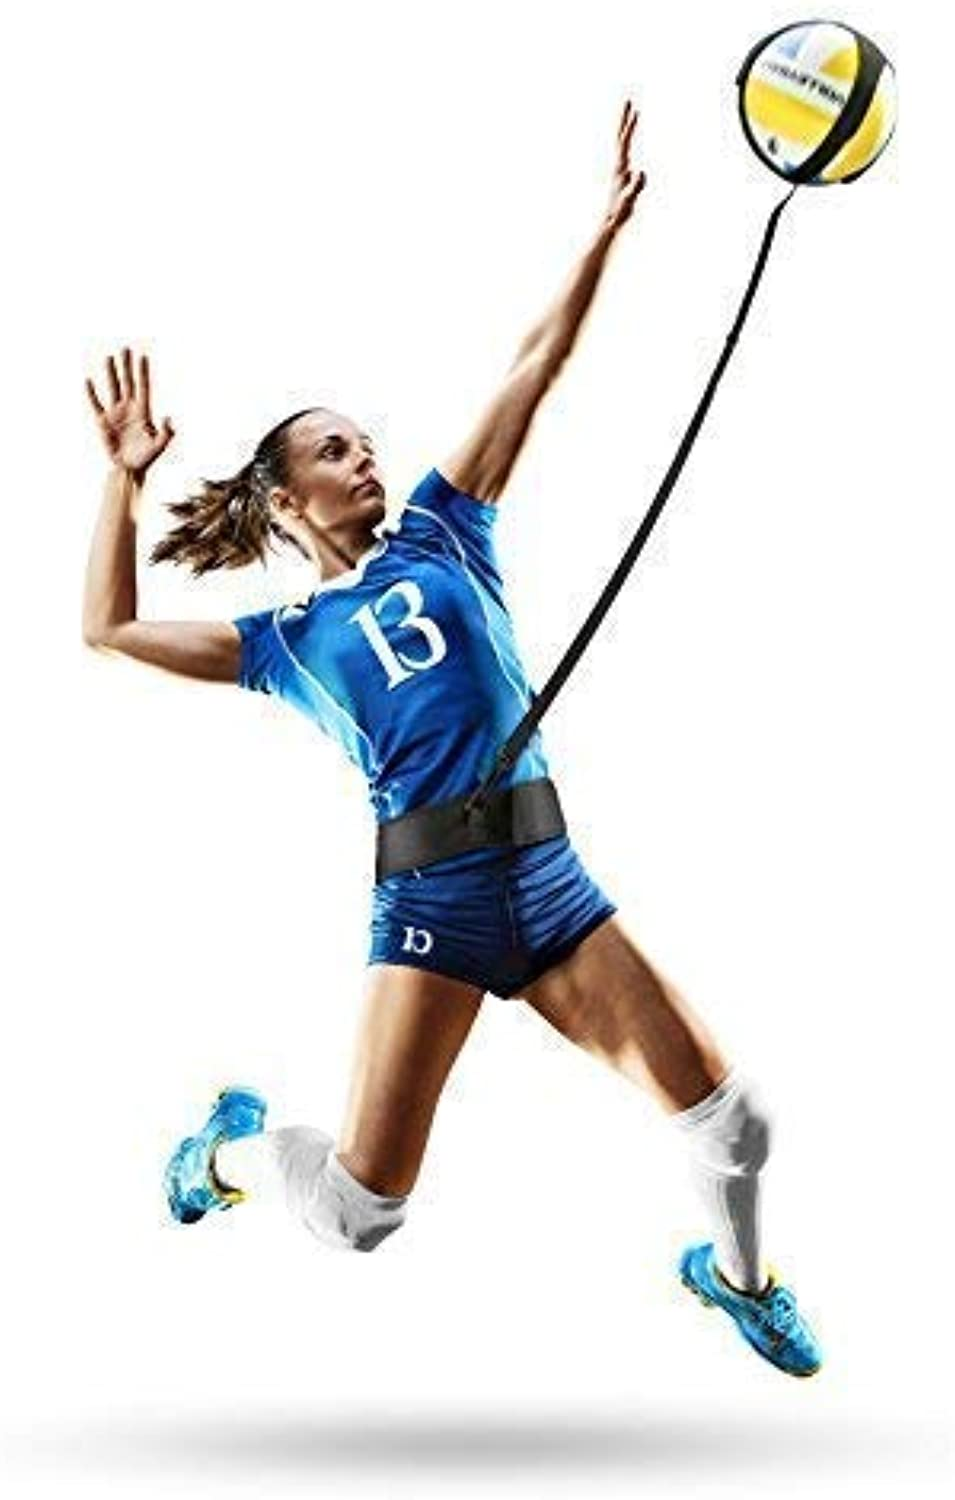 Infiiniity Volleyball Training Equipment Aid with Adjustable Waist Belt & Cord Length. Perfect Volleyball Trainer for Your Skills Like Serving, Spiking, Arm Swing. Fits All Volleyball Sizes